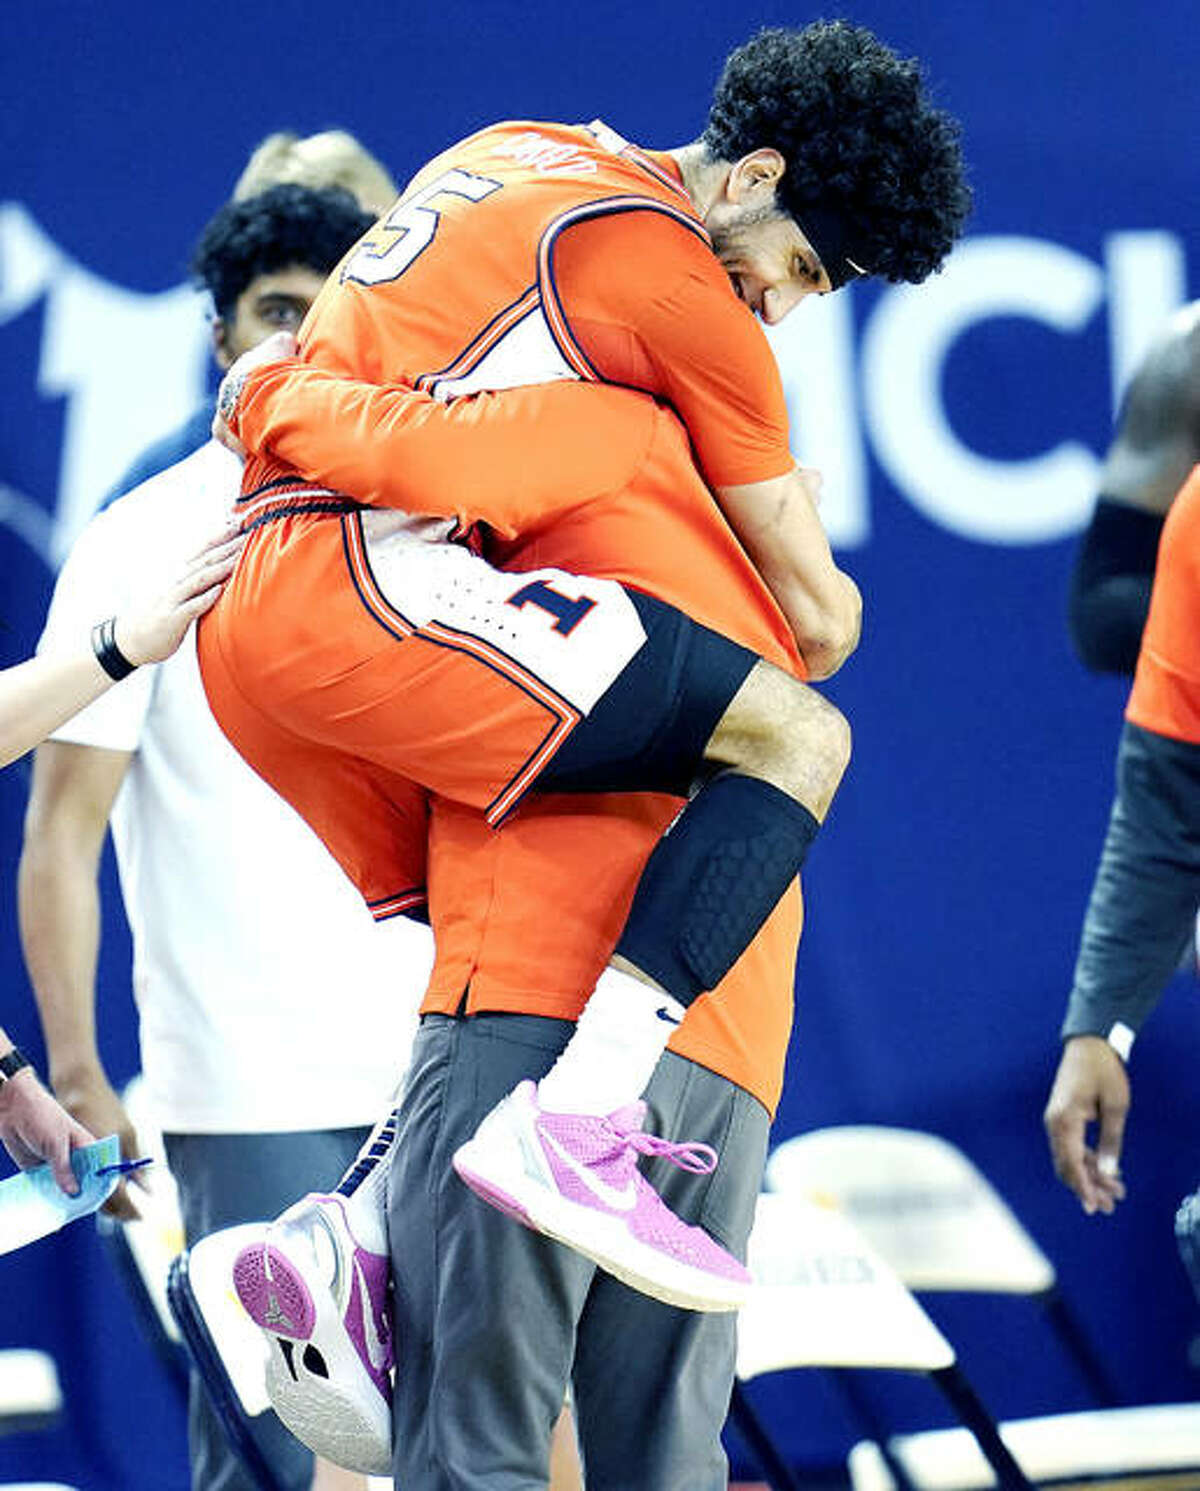 Illinois guard Andre Curbelo (5) jumps into the arms of head coach Brad Underwood in the closing moments of a 76-53 Illini victory in Ann Arbor, Mich.